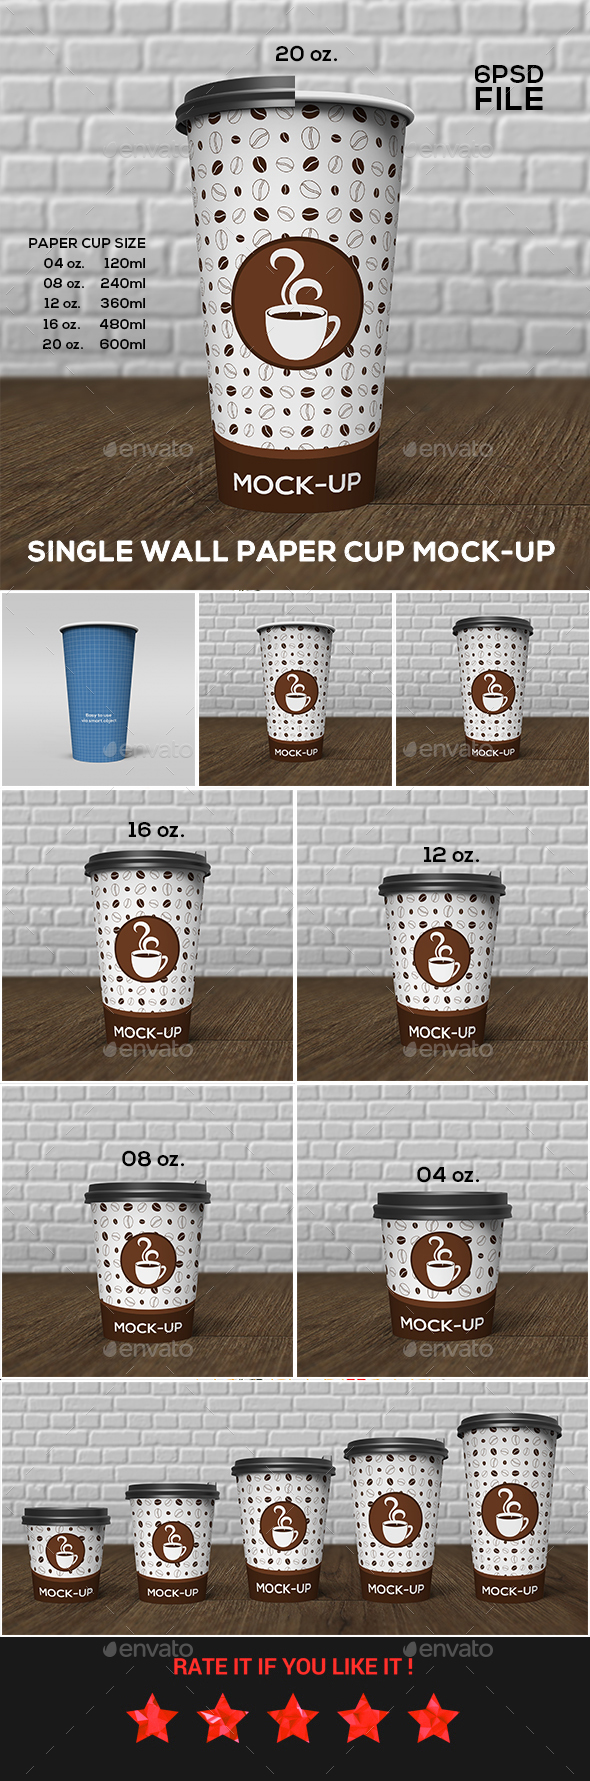 Single Wall Paper Cup Mock-Up Set - Food and Drink Packaging